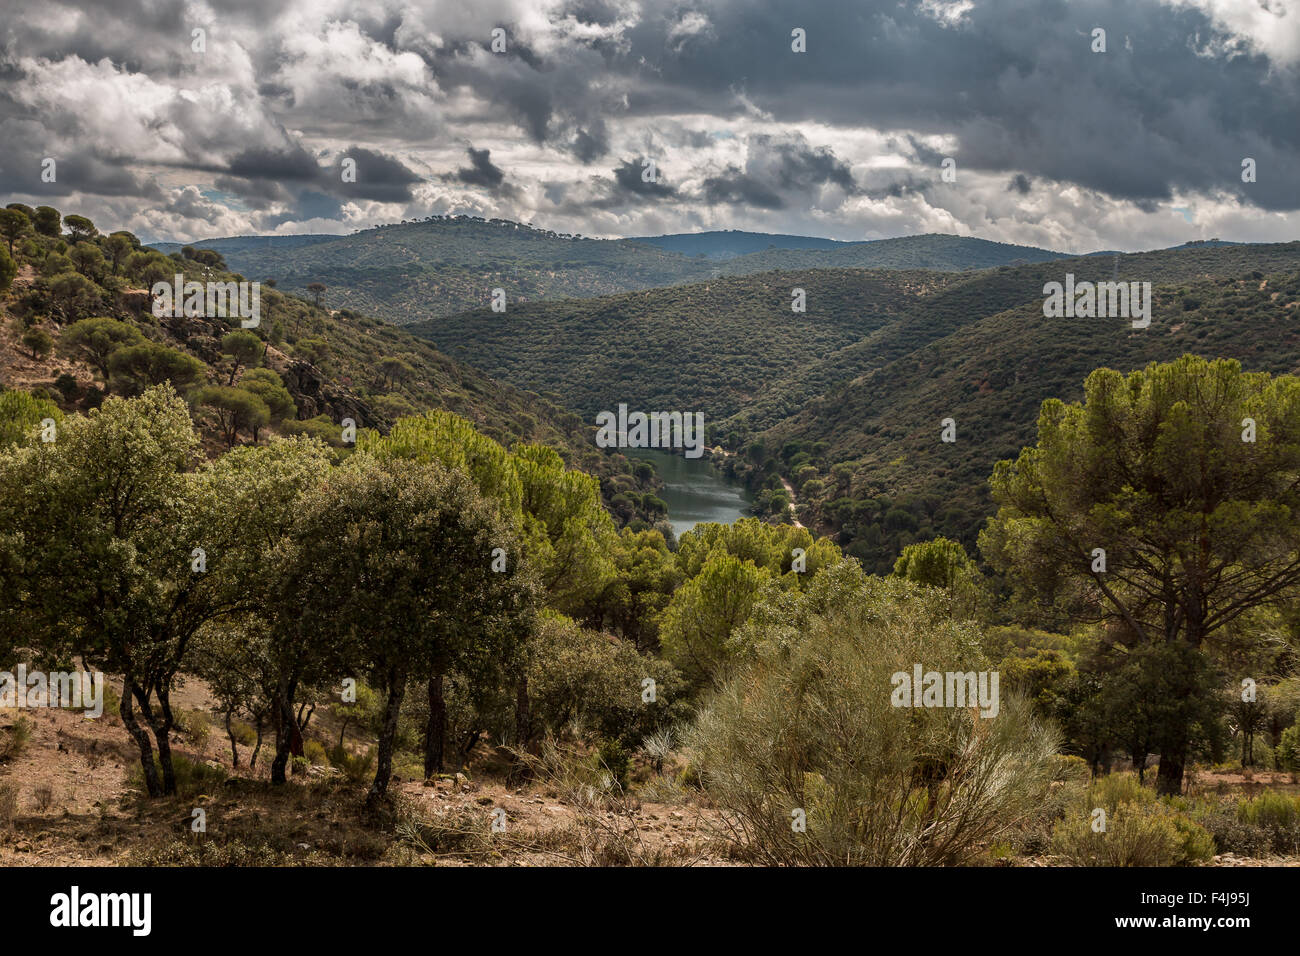 Trekking along Rio Alberche, Spain Stock Photo